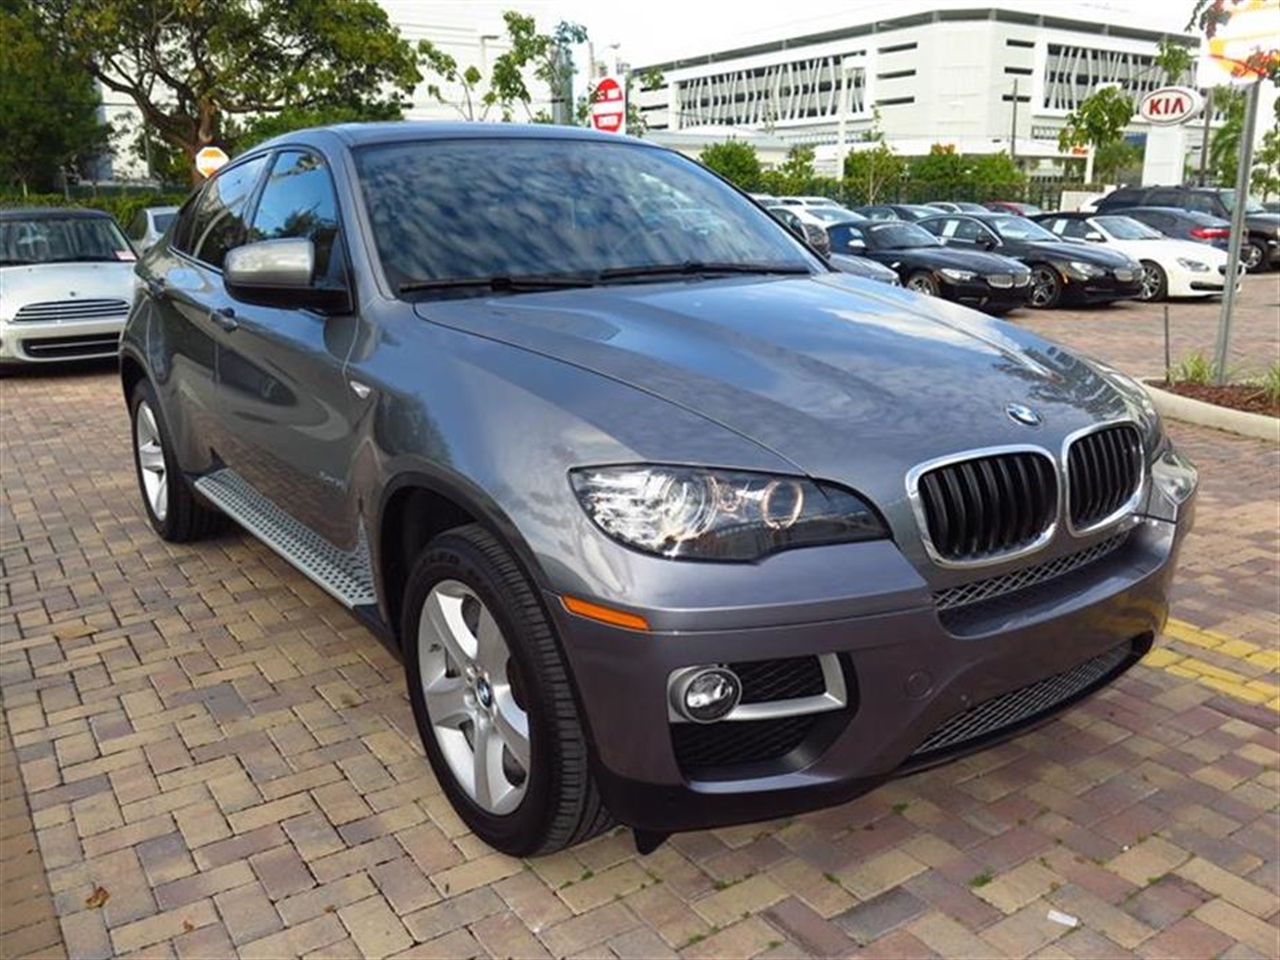 2013 BMW X6 AWD 4dr xDrive35i 9535 miles 10-way power front bucket seats -inc driver seat memory